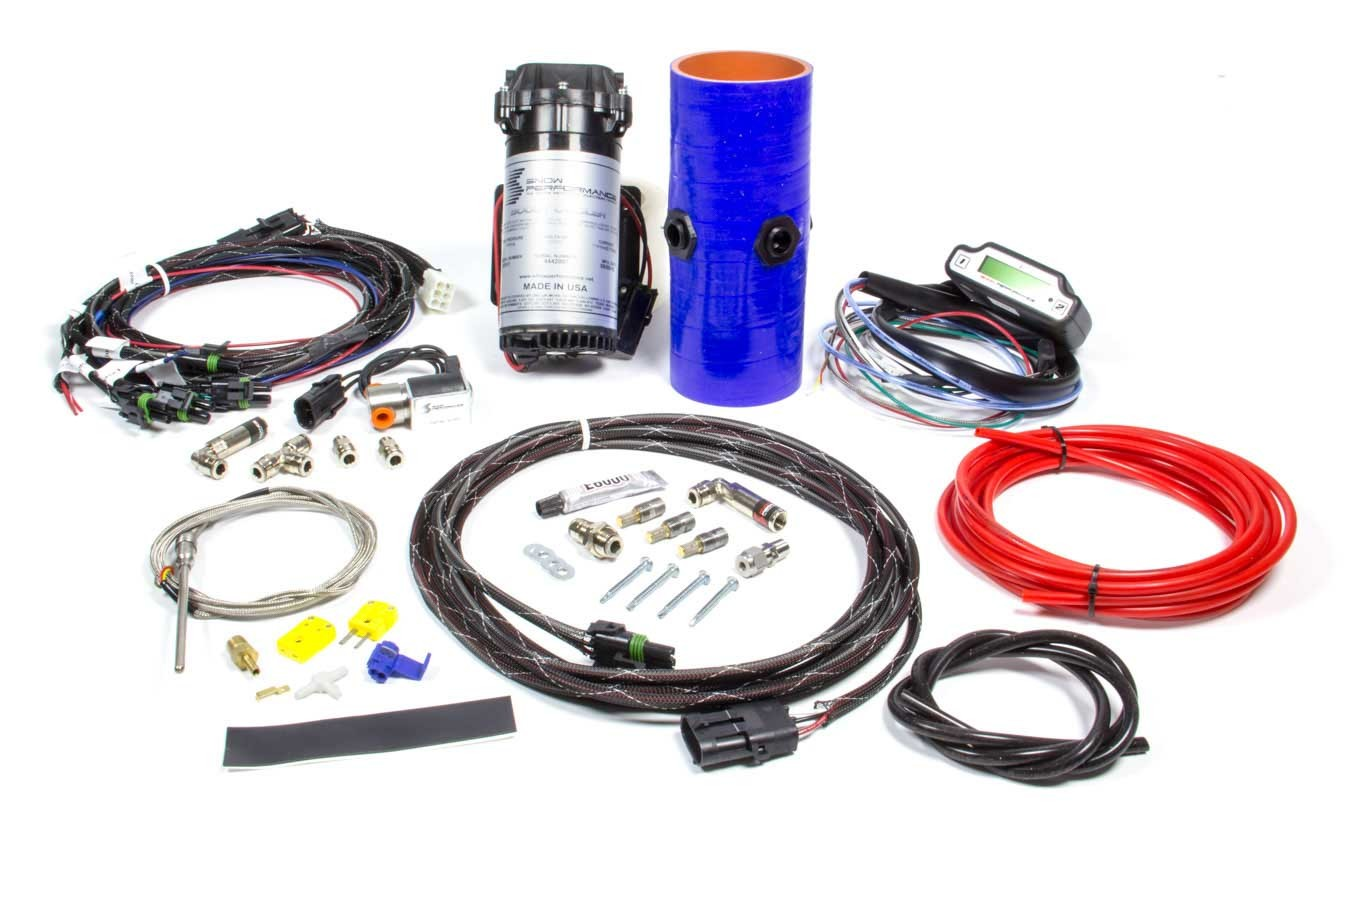 Snow Performance 530 Water Injection System, MPG Max, Boost Reference Controlled, 7 Gal Reservoir, GM Duramax, Kit